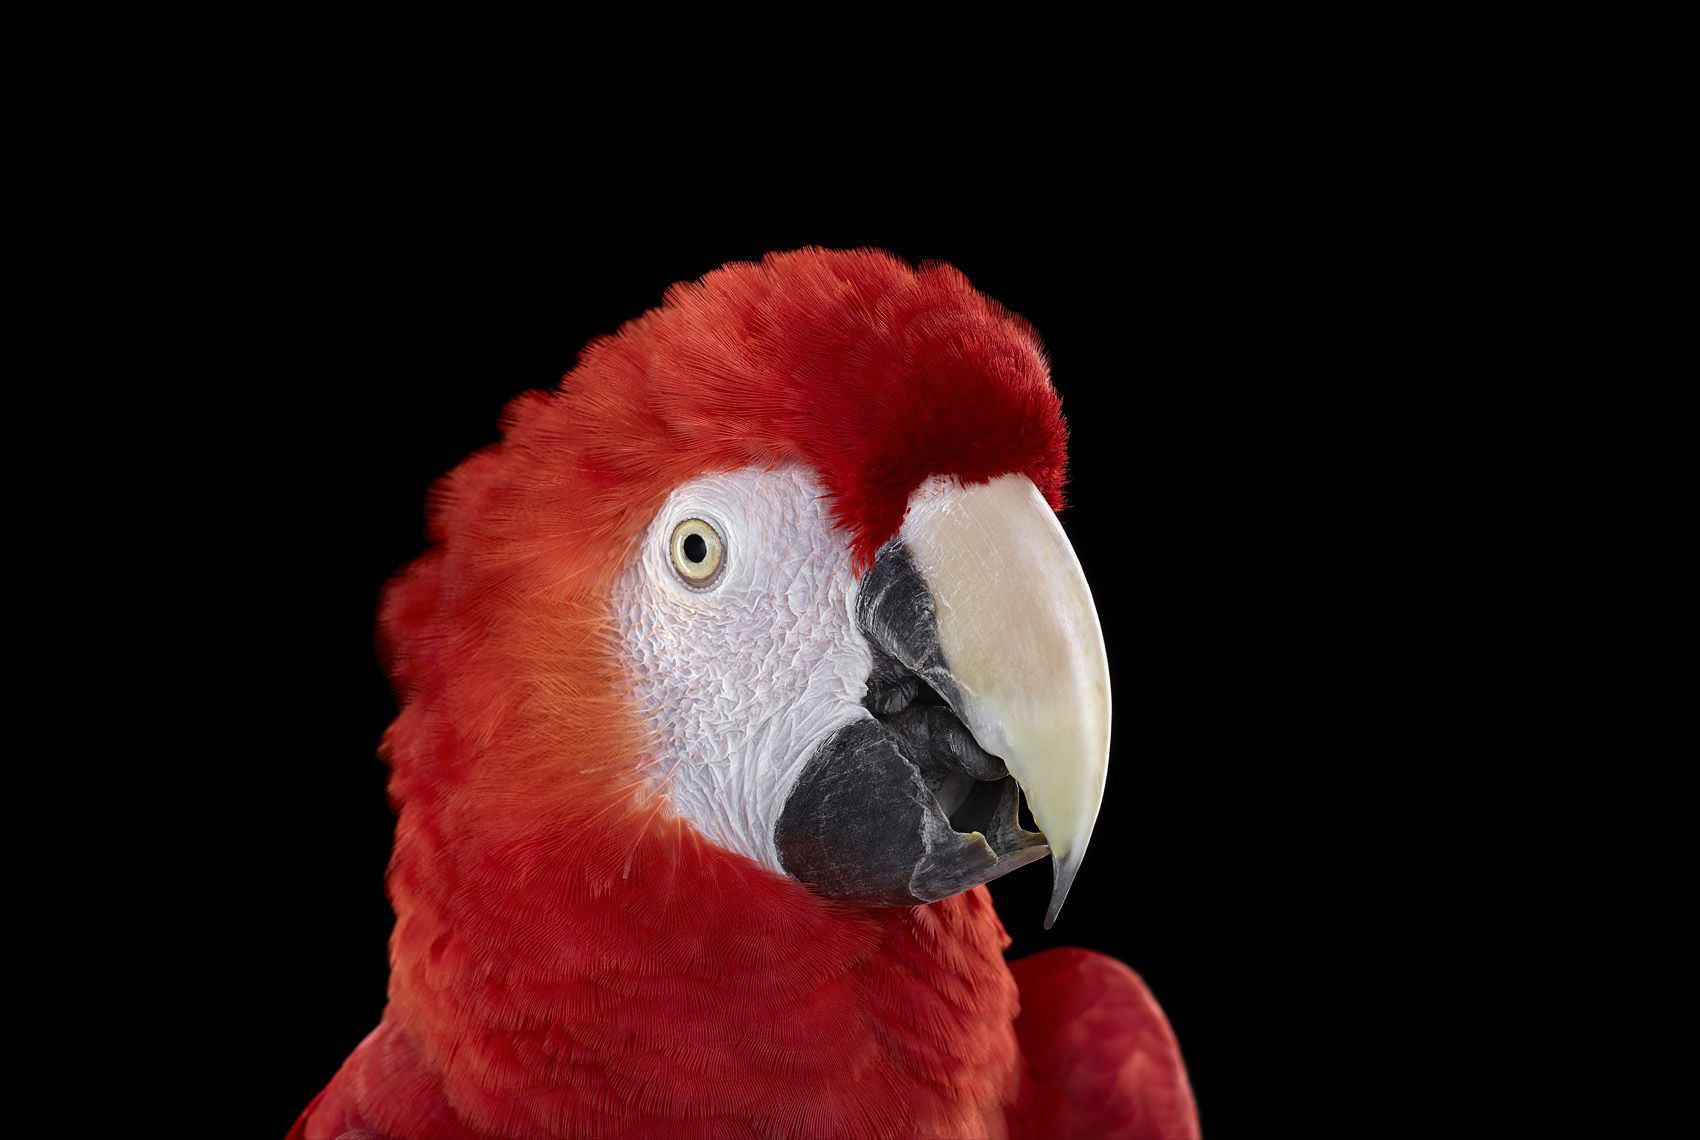 Scarlet Macaw #1, Albuquerque, NM, 2016,Brad Wilson,Photographie contemporaine